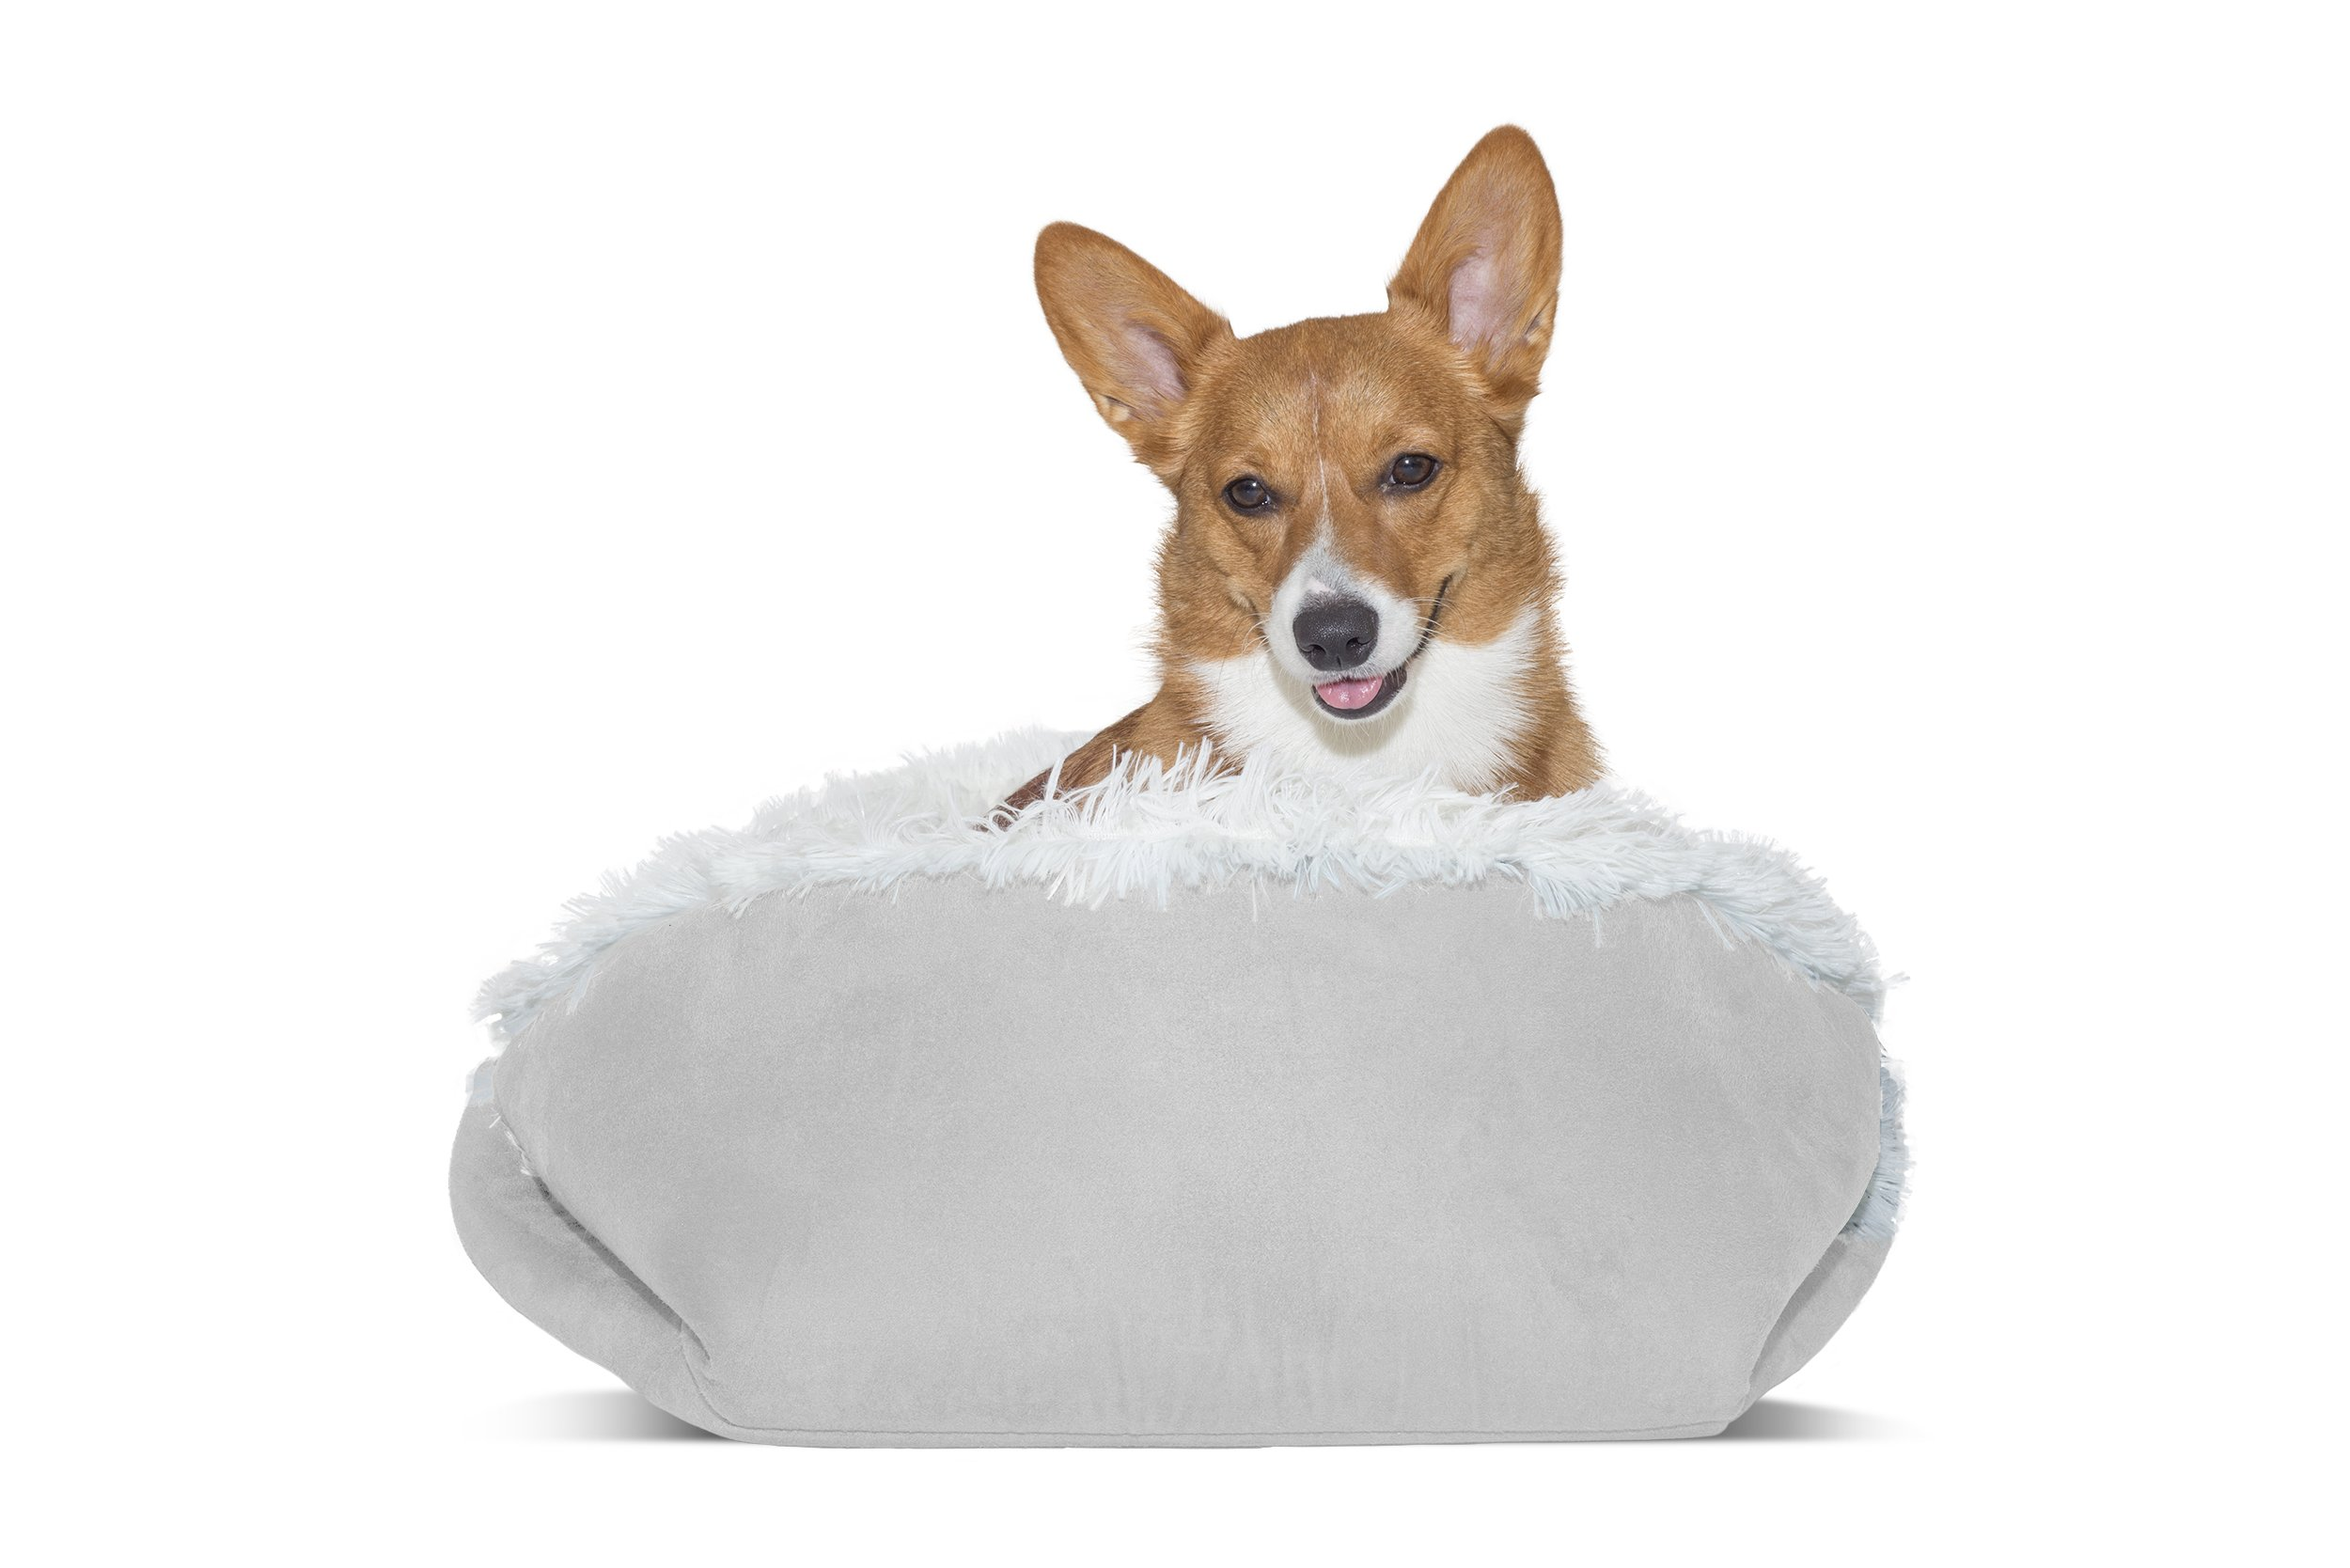 Furhaven Pet Dog Bed | Convertible Self-Warming Cuddle Pet Bed for Dogs & Cats, Silver, Large